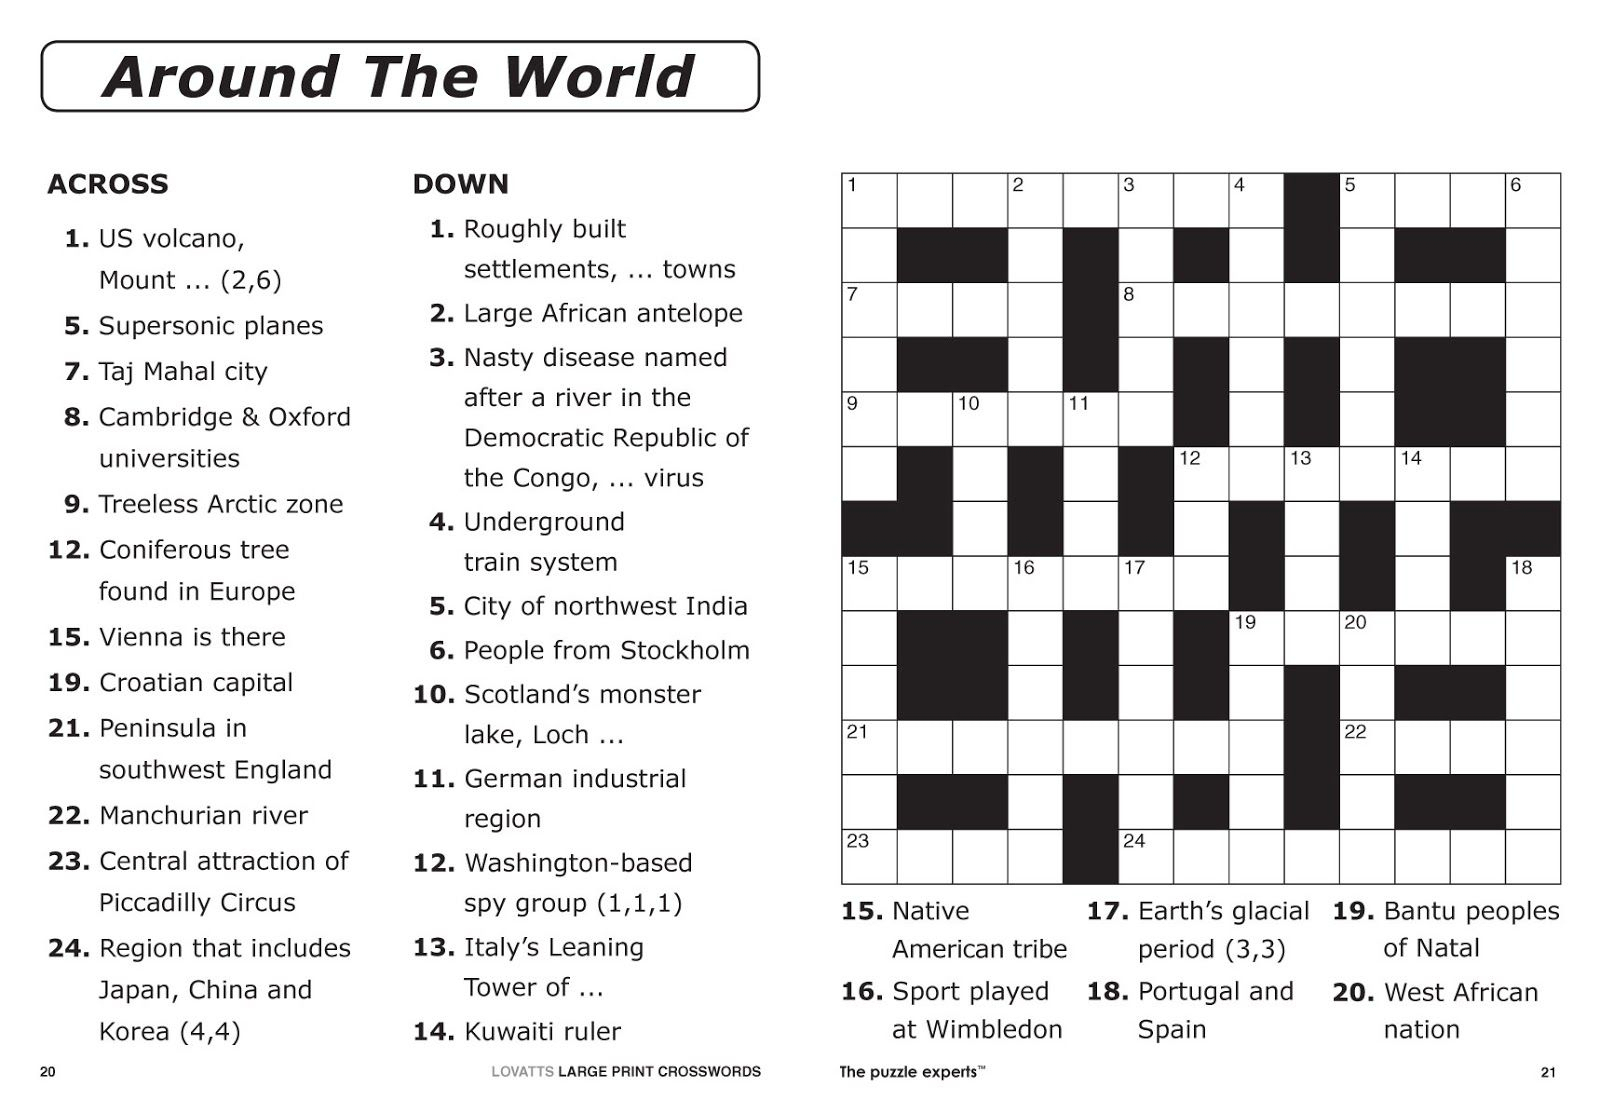 Free Printable Large Print Crossword Puzzles | M3U8 - Bible Crossword Puzzles For Kids Free Printable